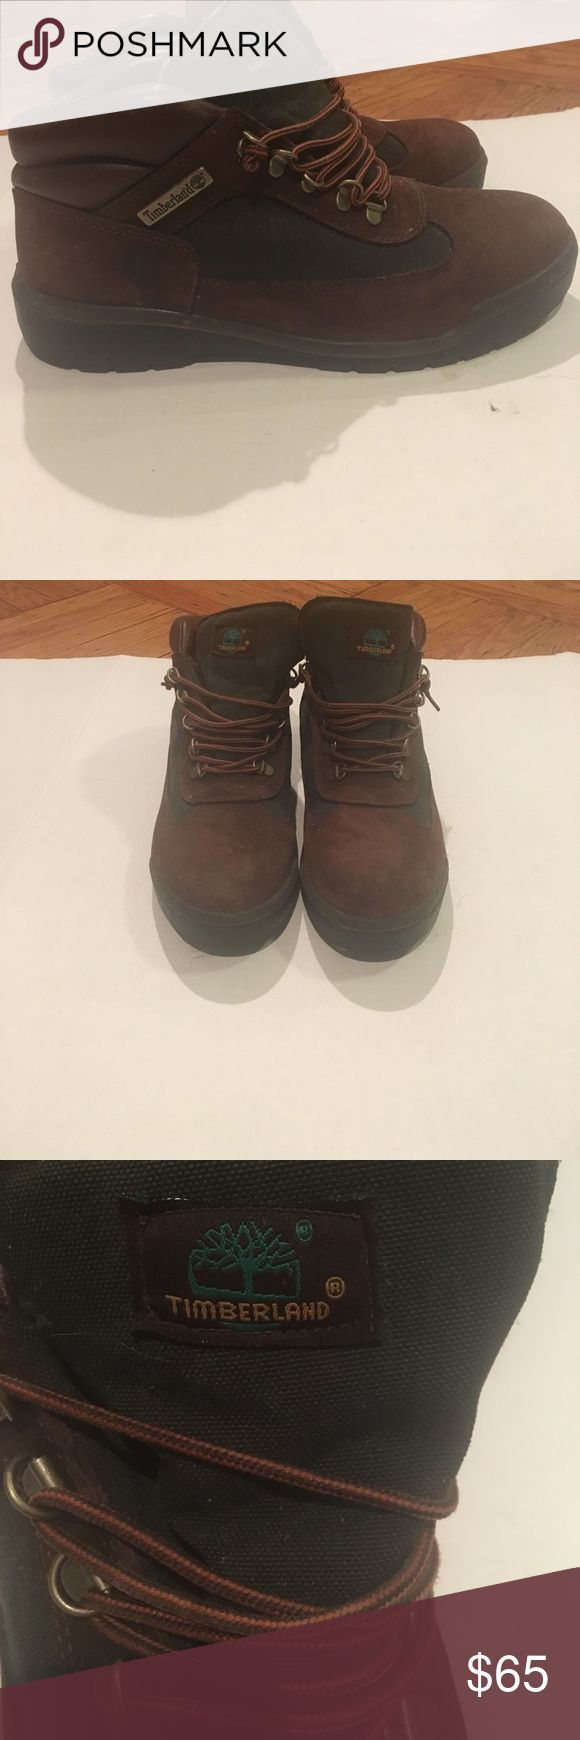 Brown and green timberland field boots Brown and green timberland field boots Timberland Shoes Boots